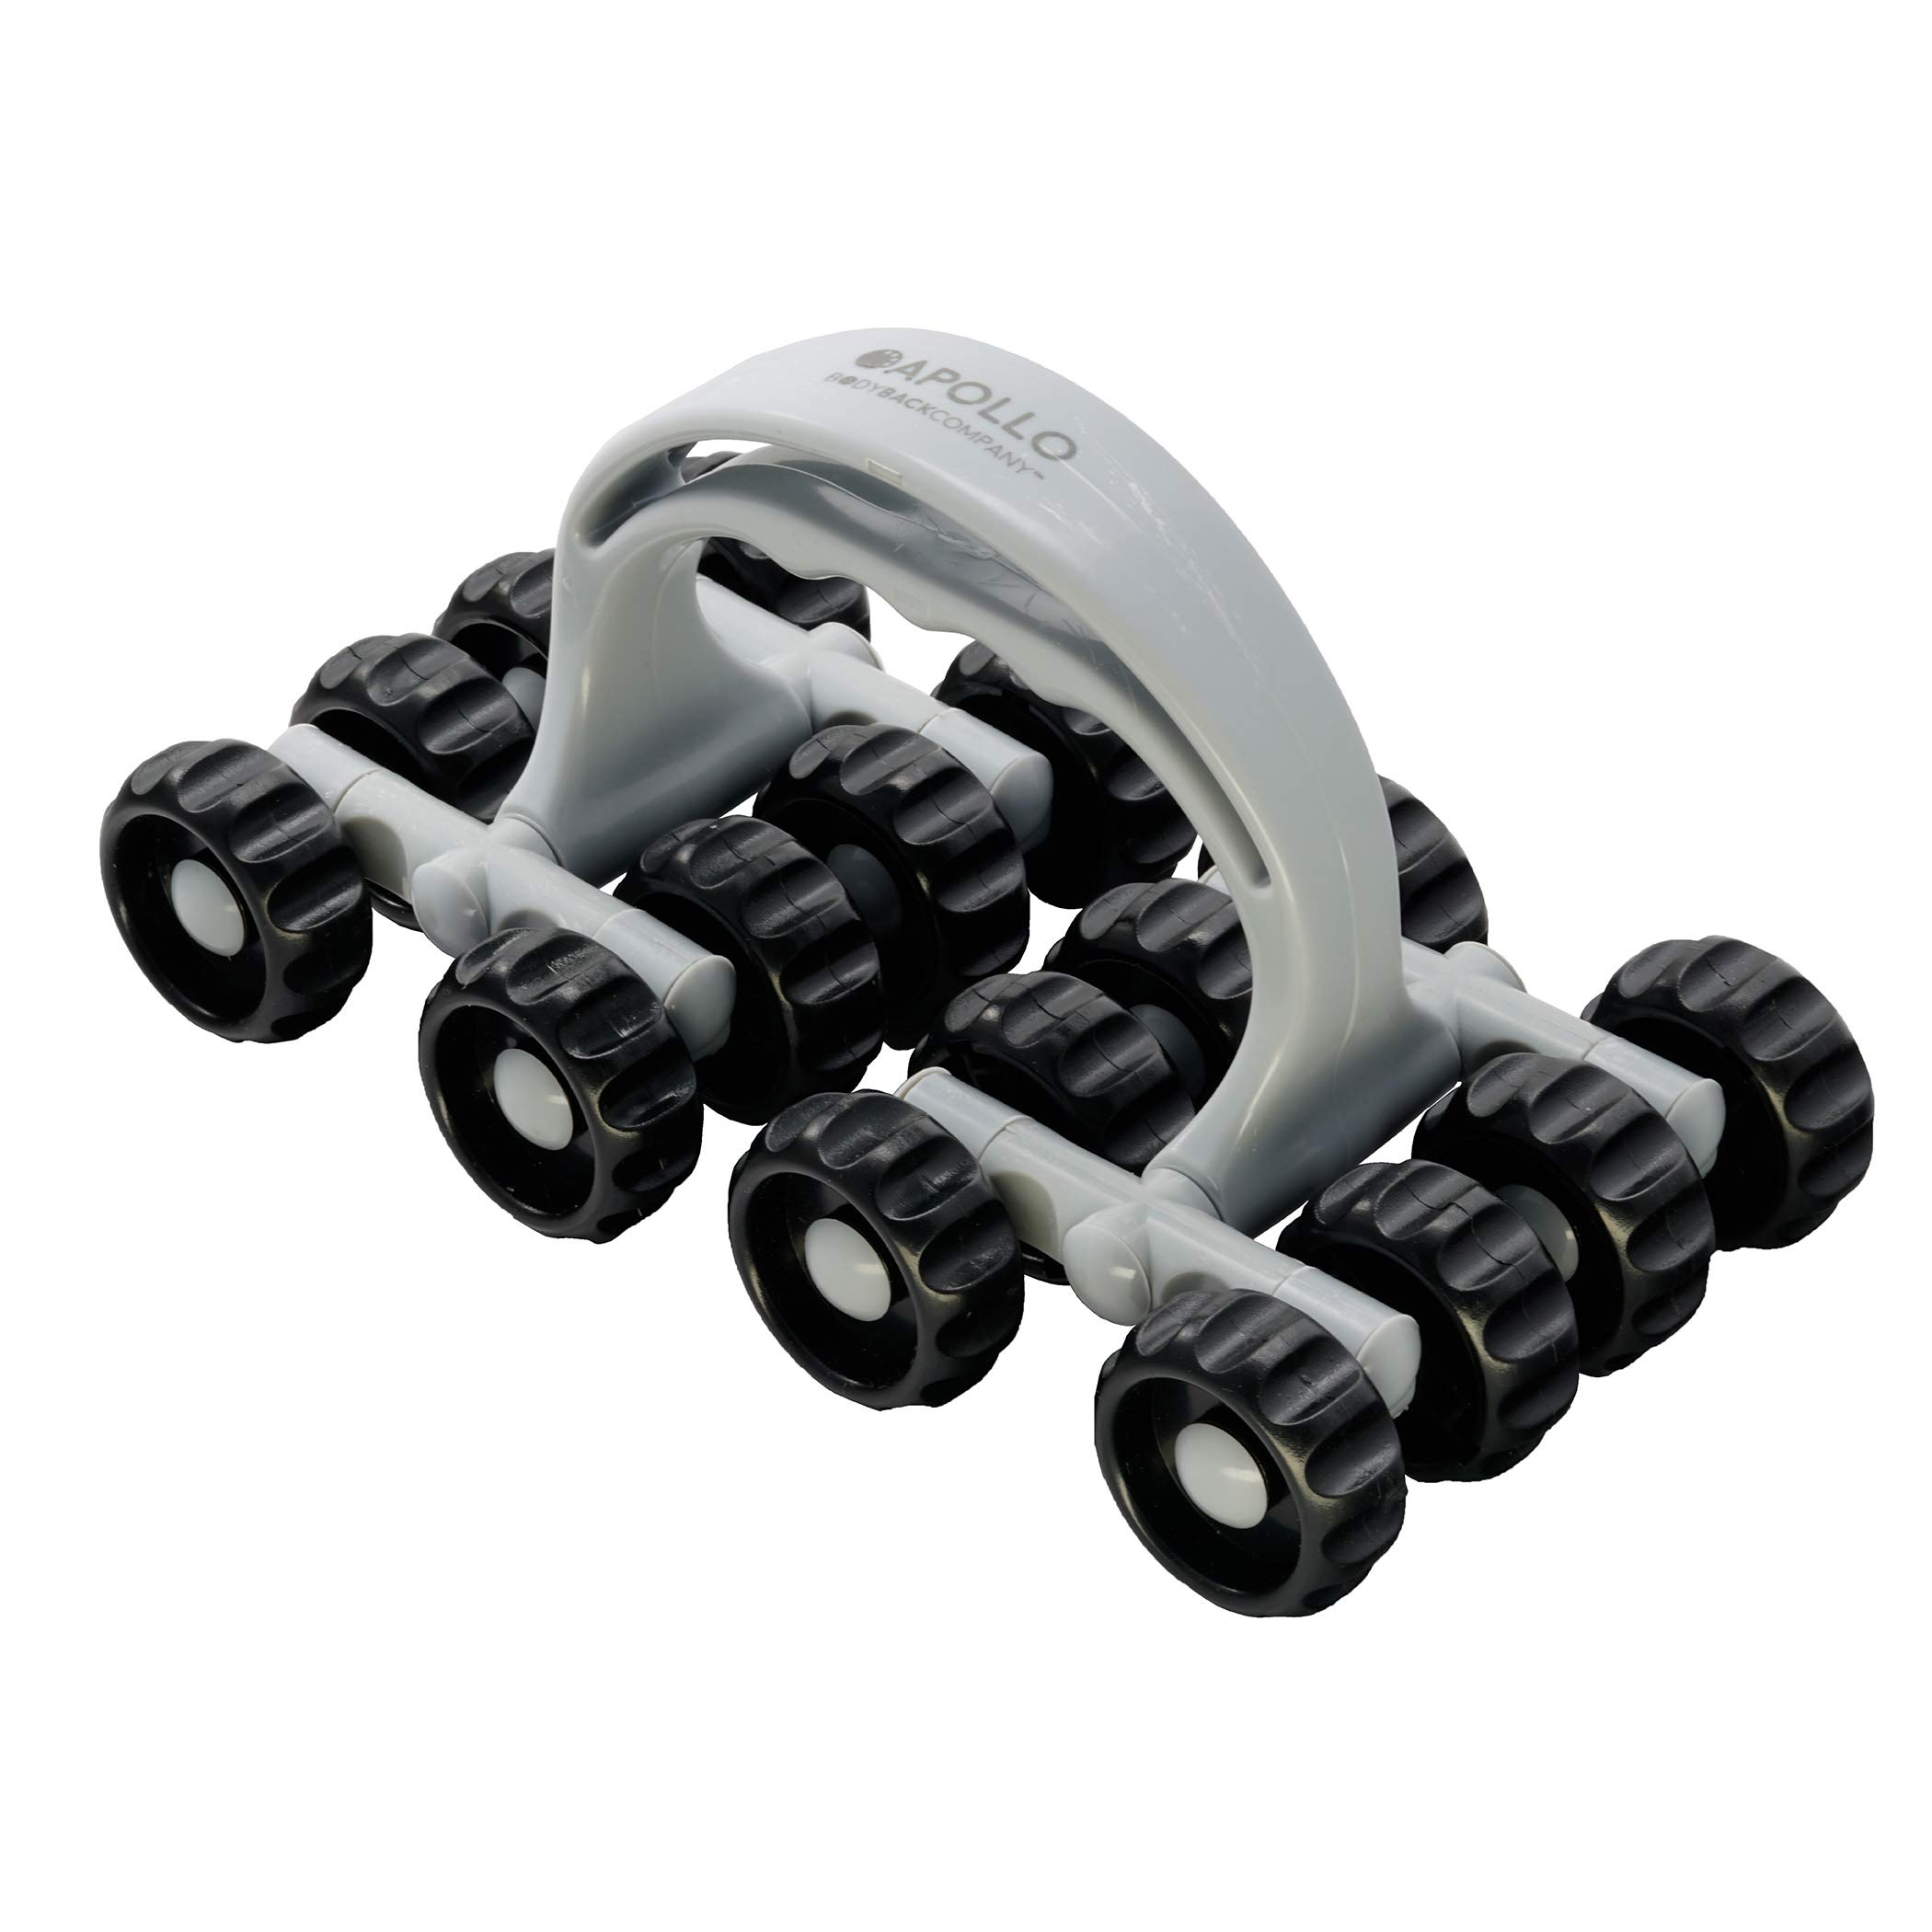 Apollo Roller Massage Tool by Body Back Company - Full Contact Muscle Roller, Arm, Leg, Calf & Neck Massager for Trigger Point Release, Deep Tissue Relaxation, Handheld Foot Care, Stress & Pain Relief